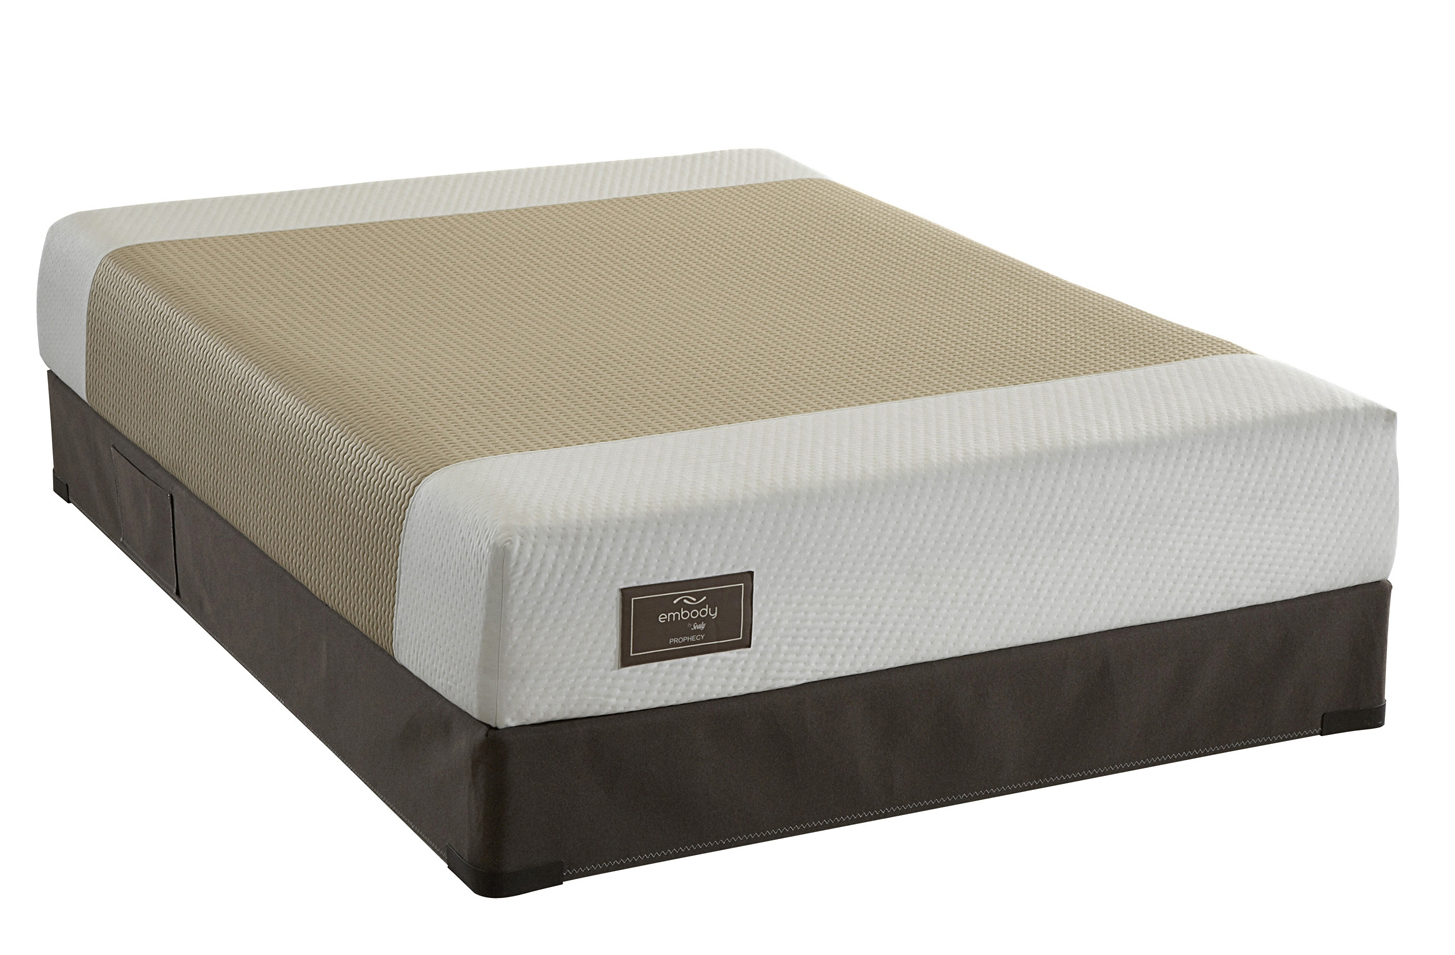 Embody By Sealy Prophecy Memory Foam Mattress